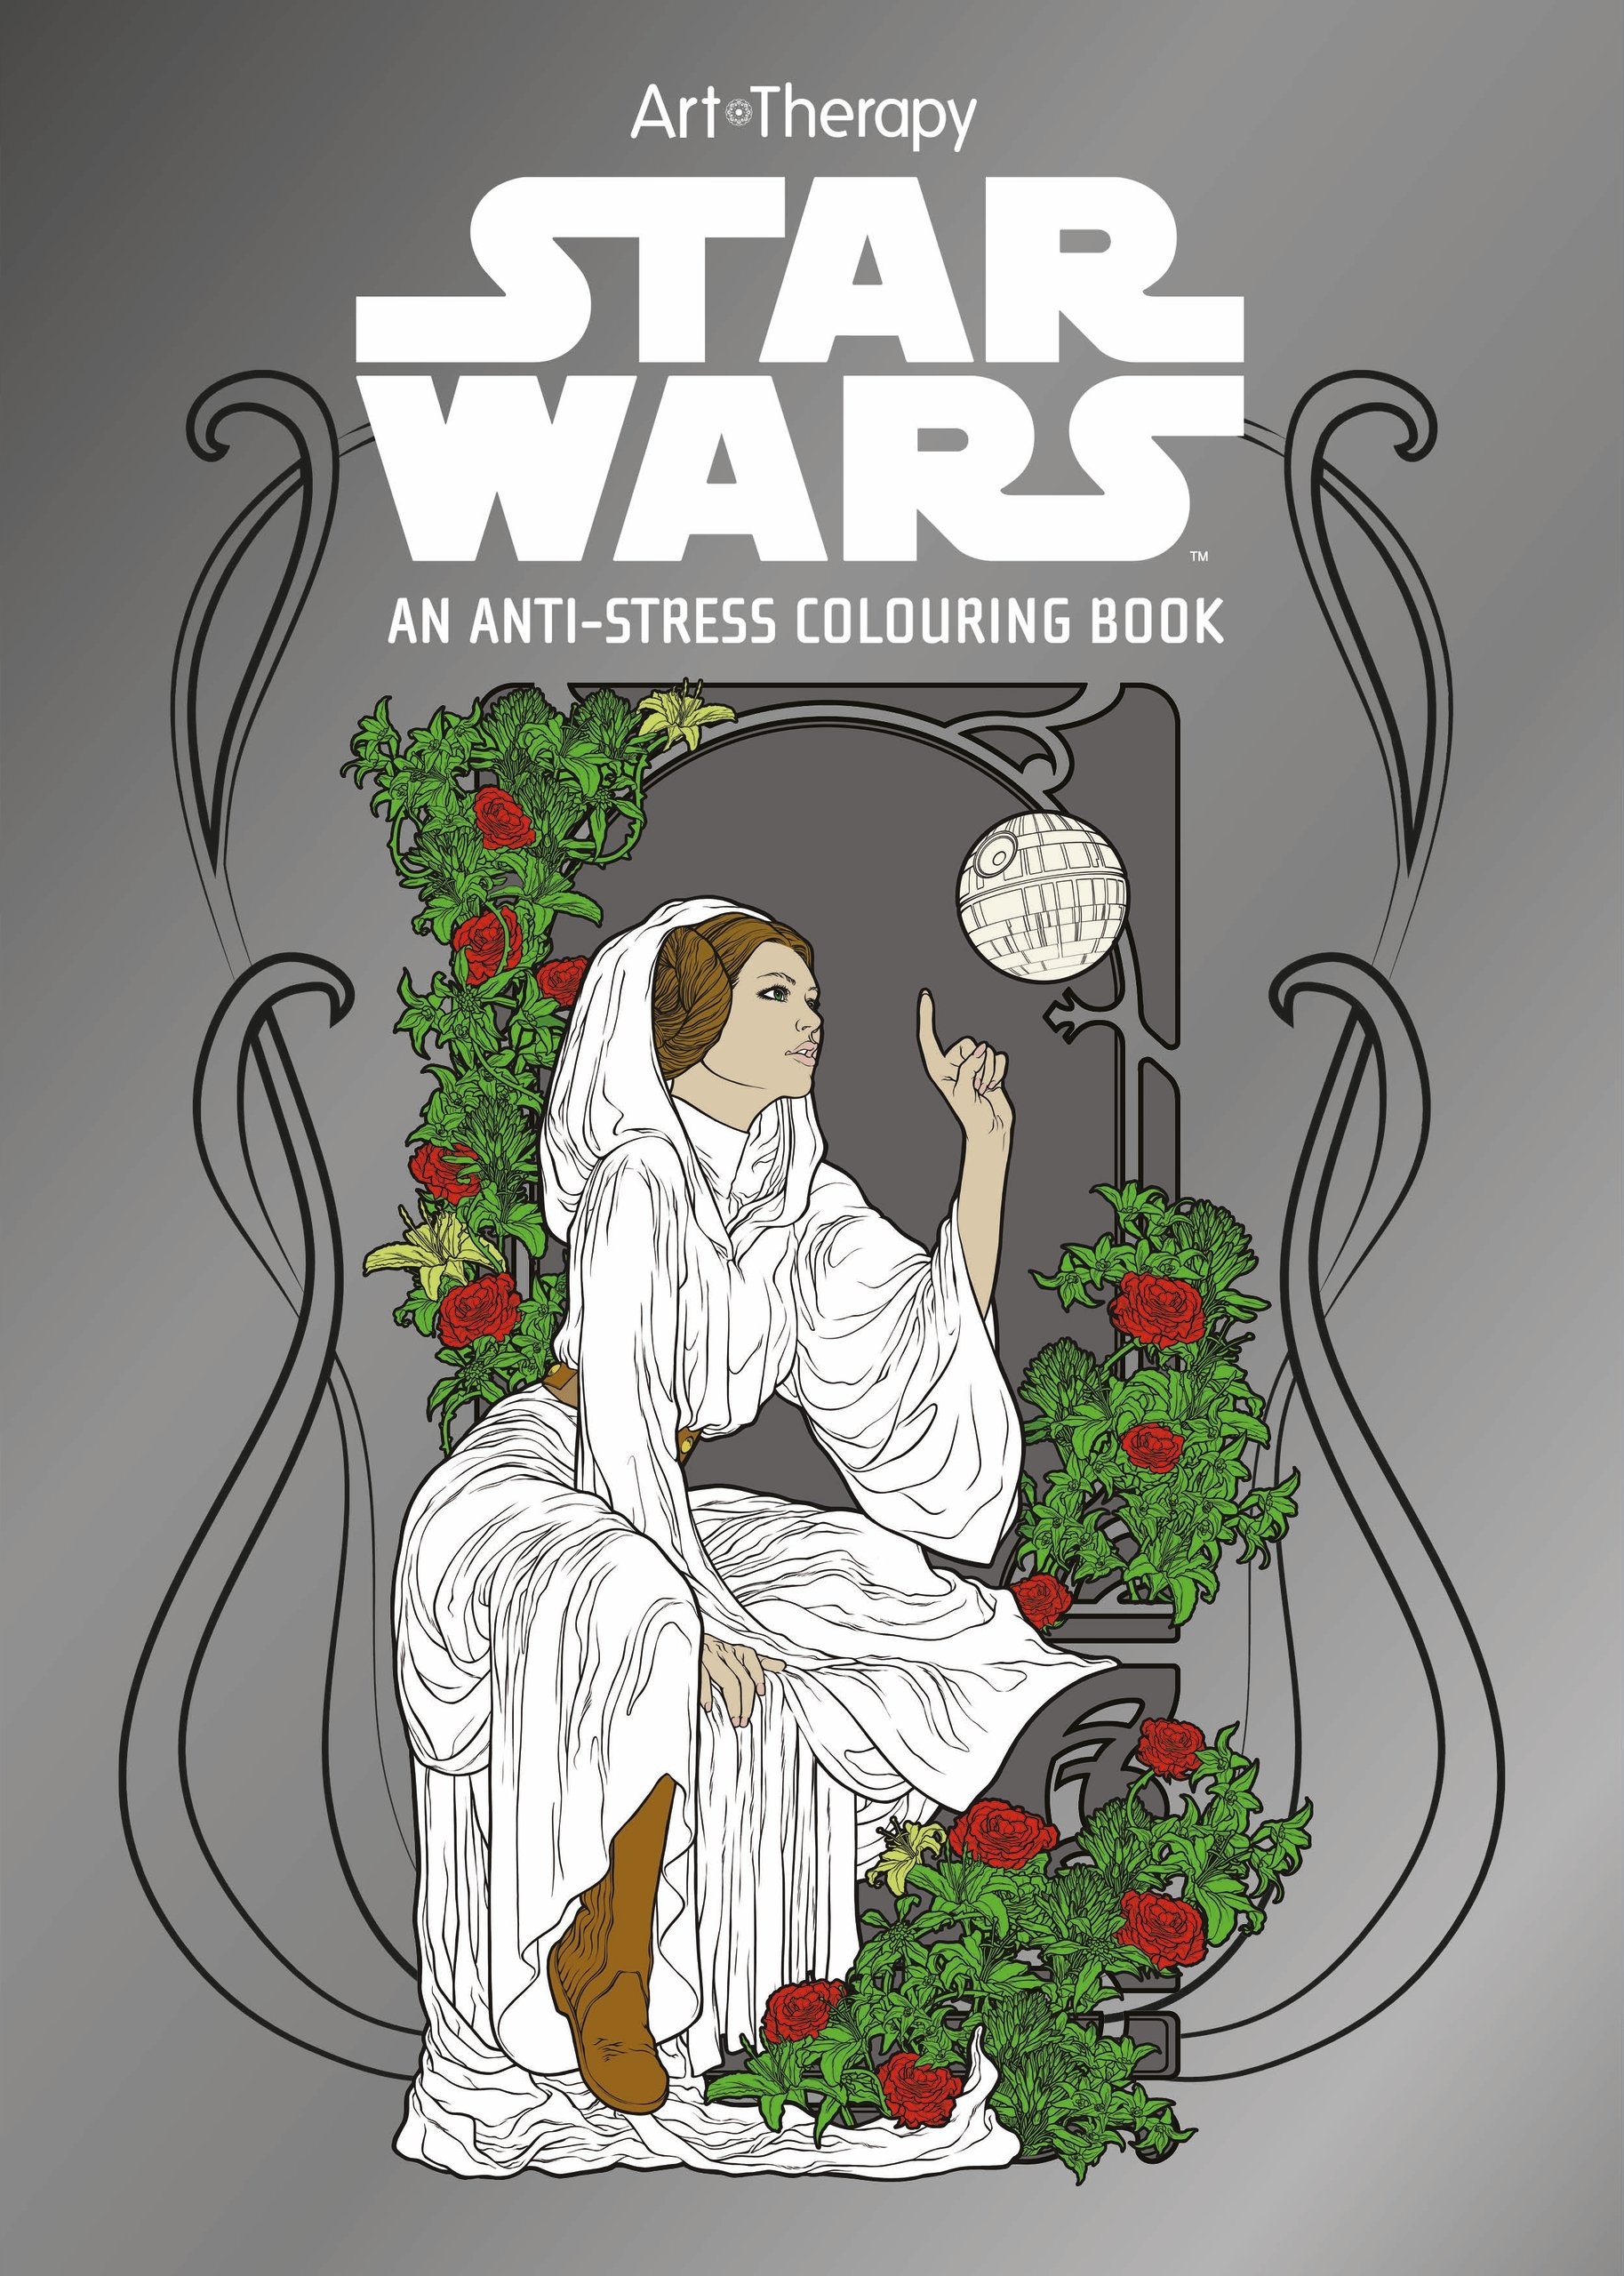 Star Wars Art Therapy Colouring Book NA 9781405279918 Amazon Books